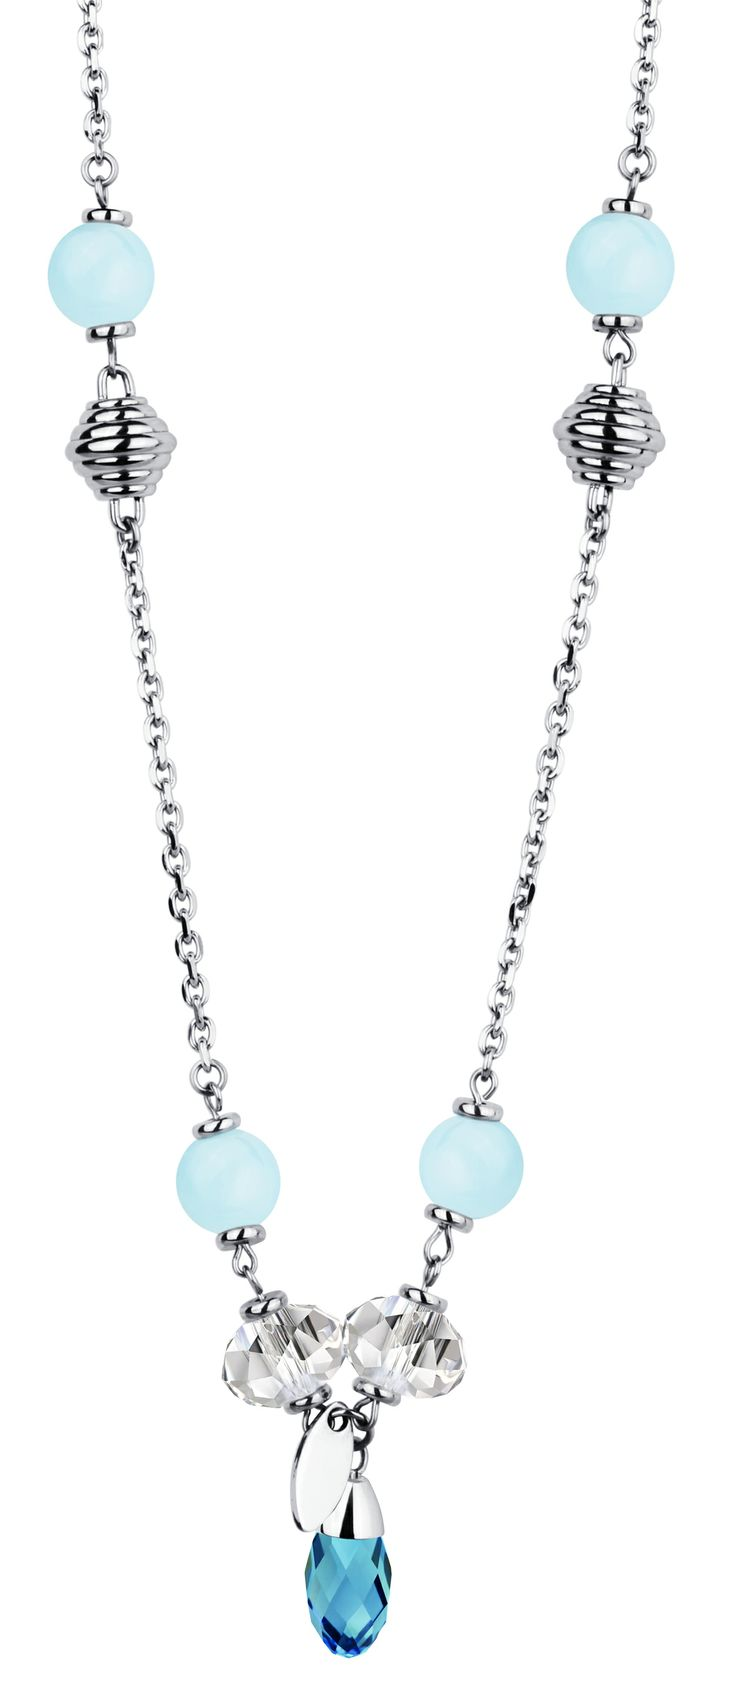 Stainless Steel, Turquoise, White Crystal and Aquamarine Necklace.